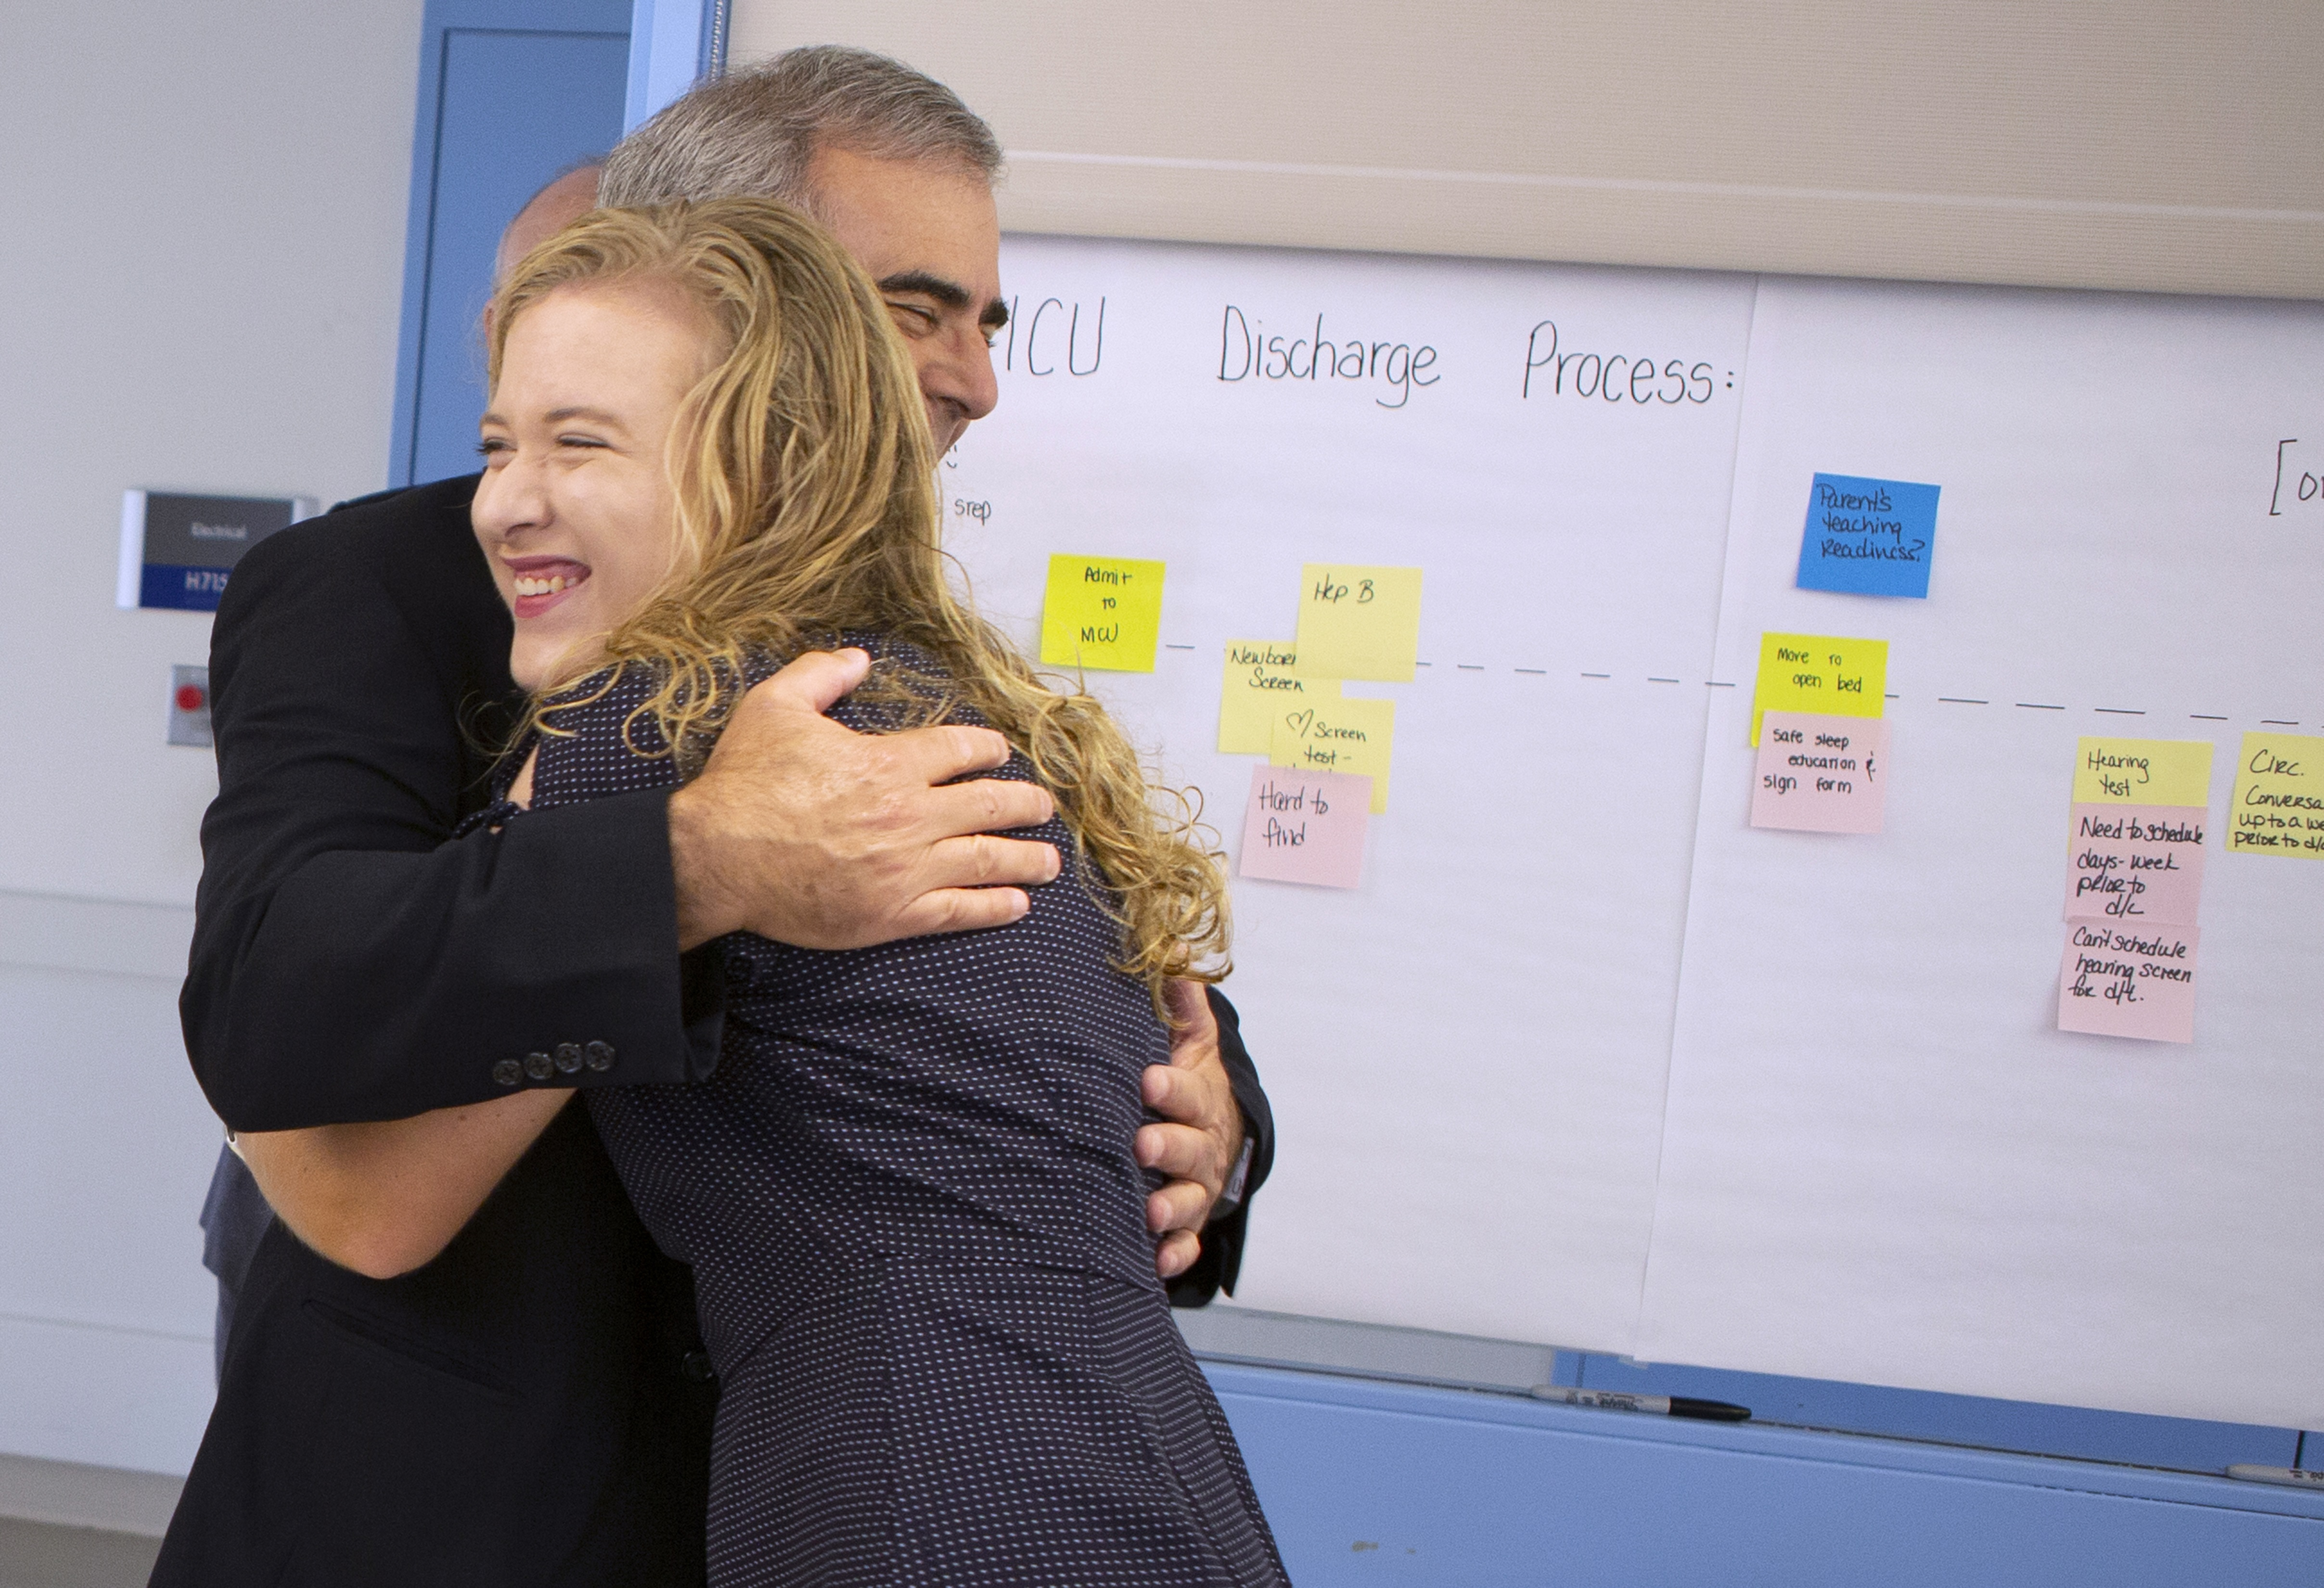 Dr. Palmer and Tiffany Seibert smile and hug during an emotional reunion. Behind them a whiteboard with post-it notes is visible.